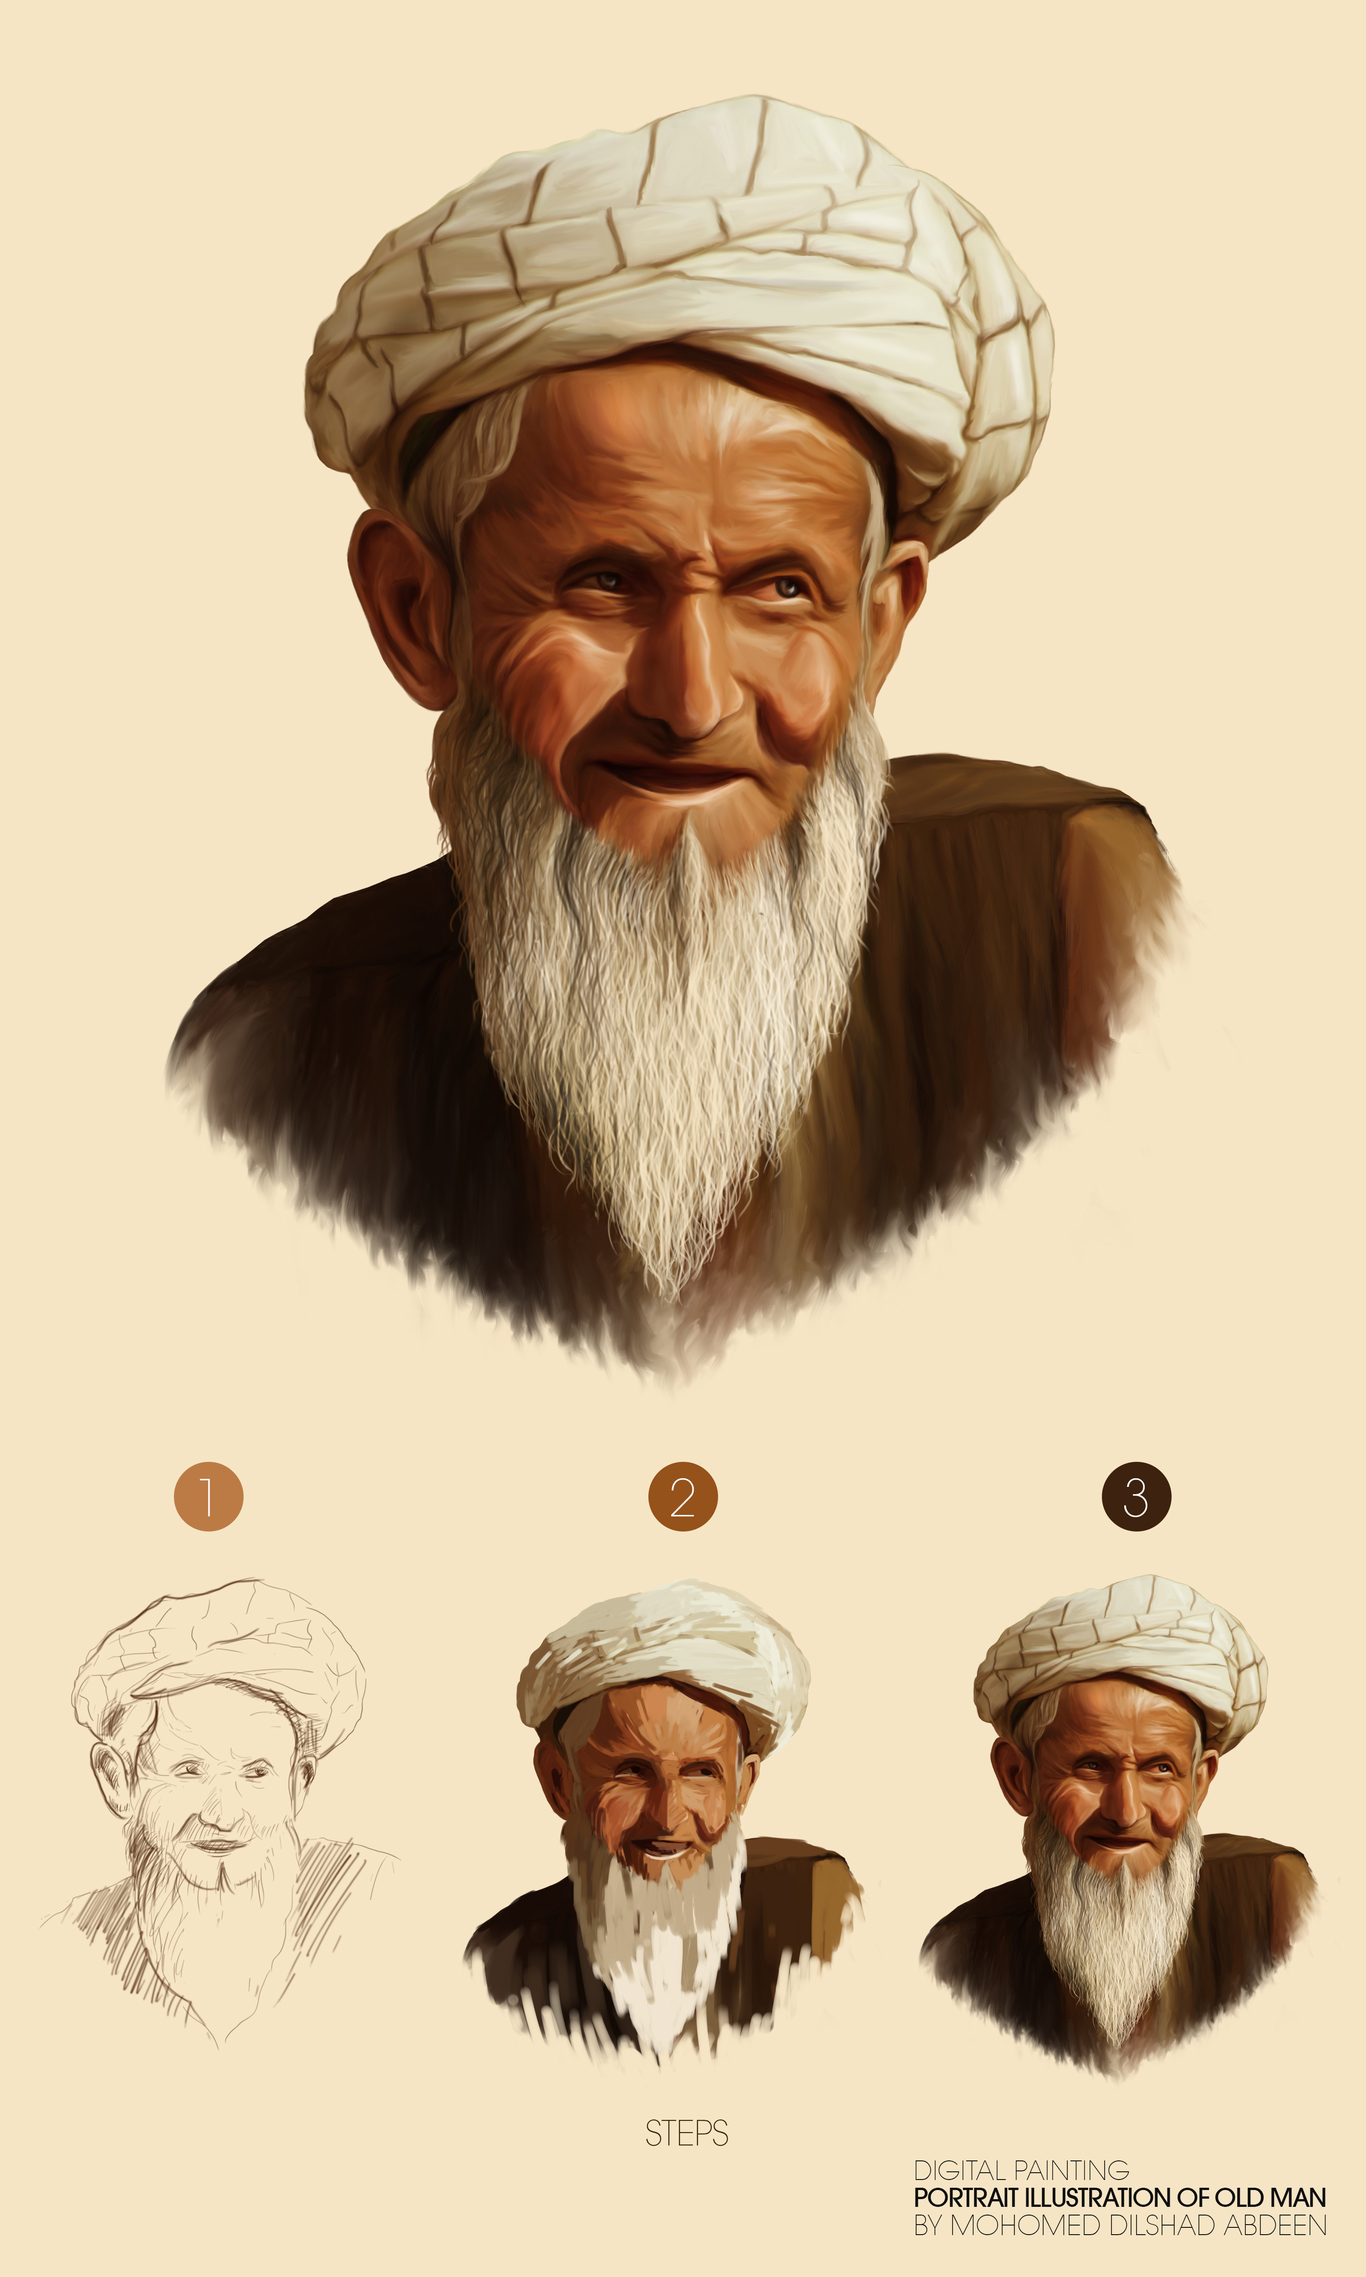 Dilshad portrait illustratio 1 2e90808e wj0n